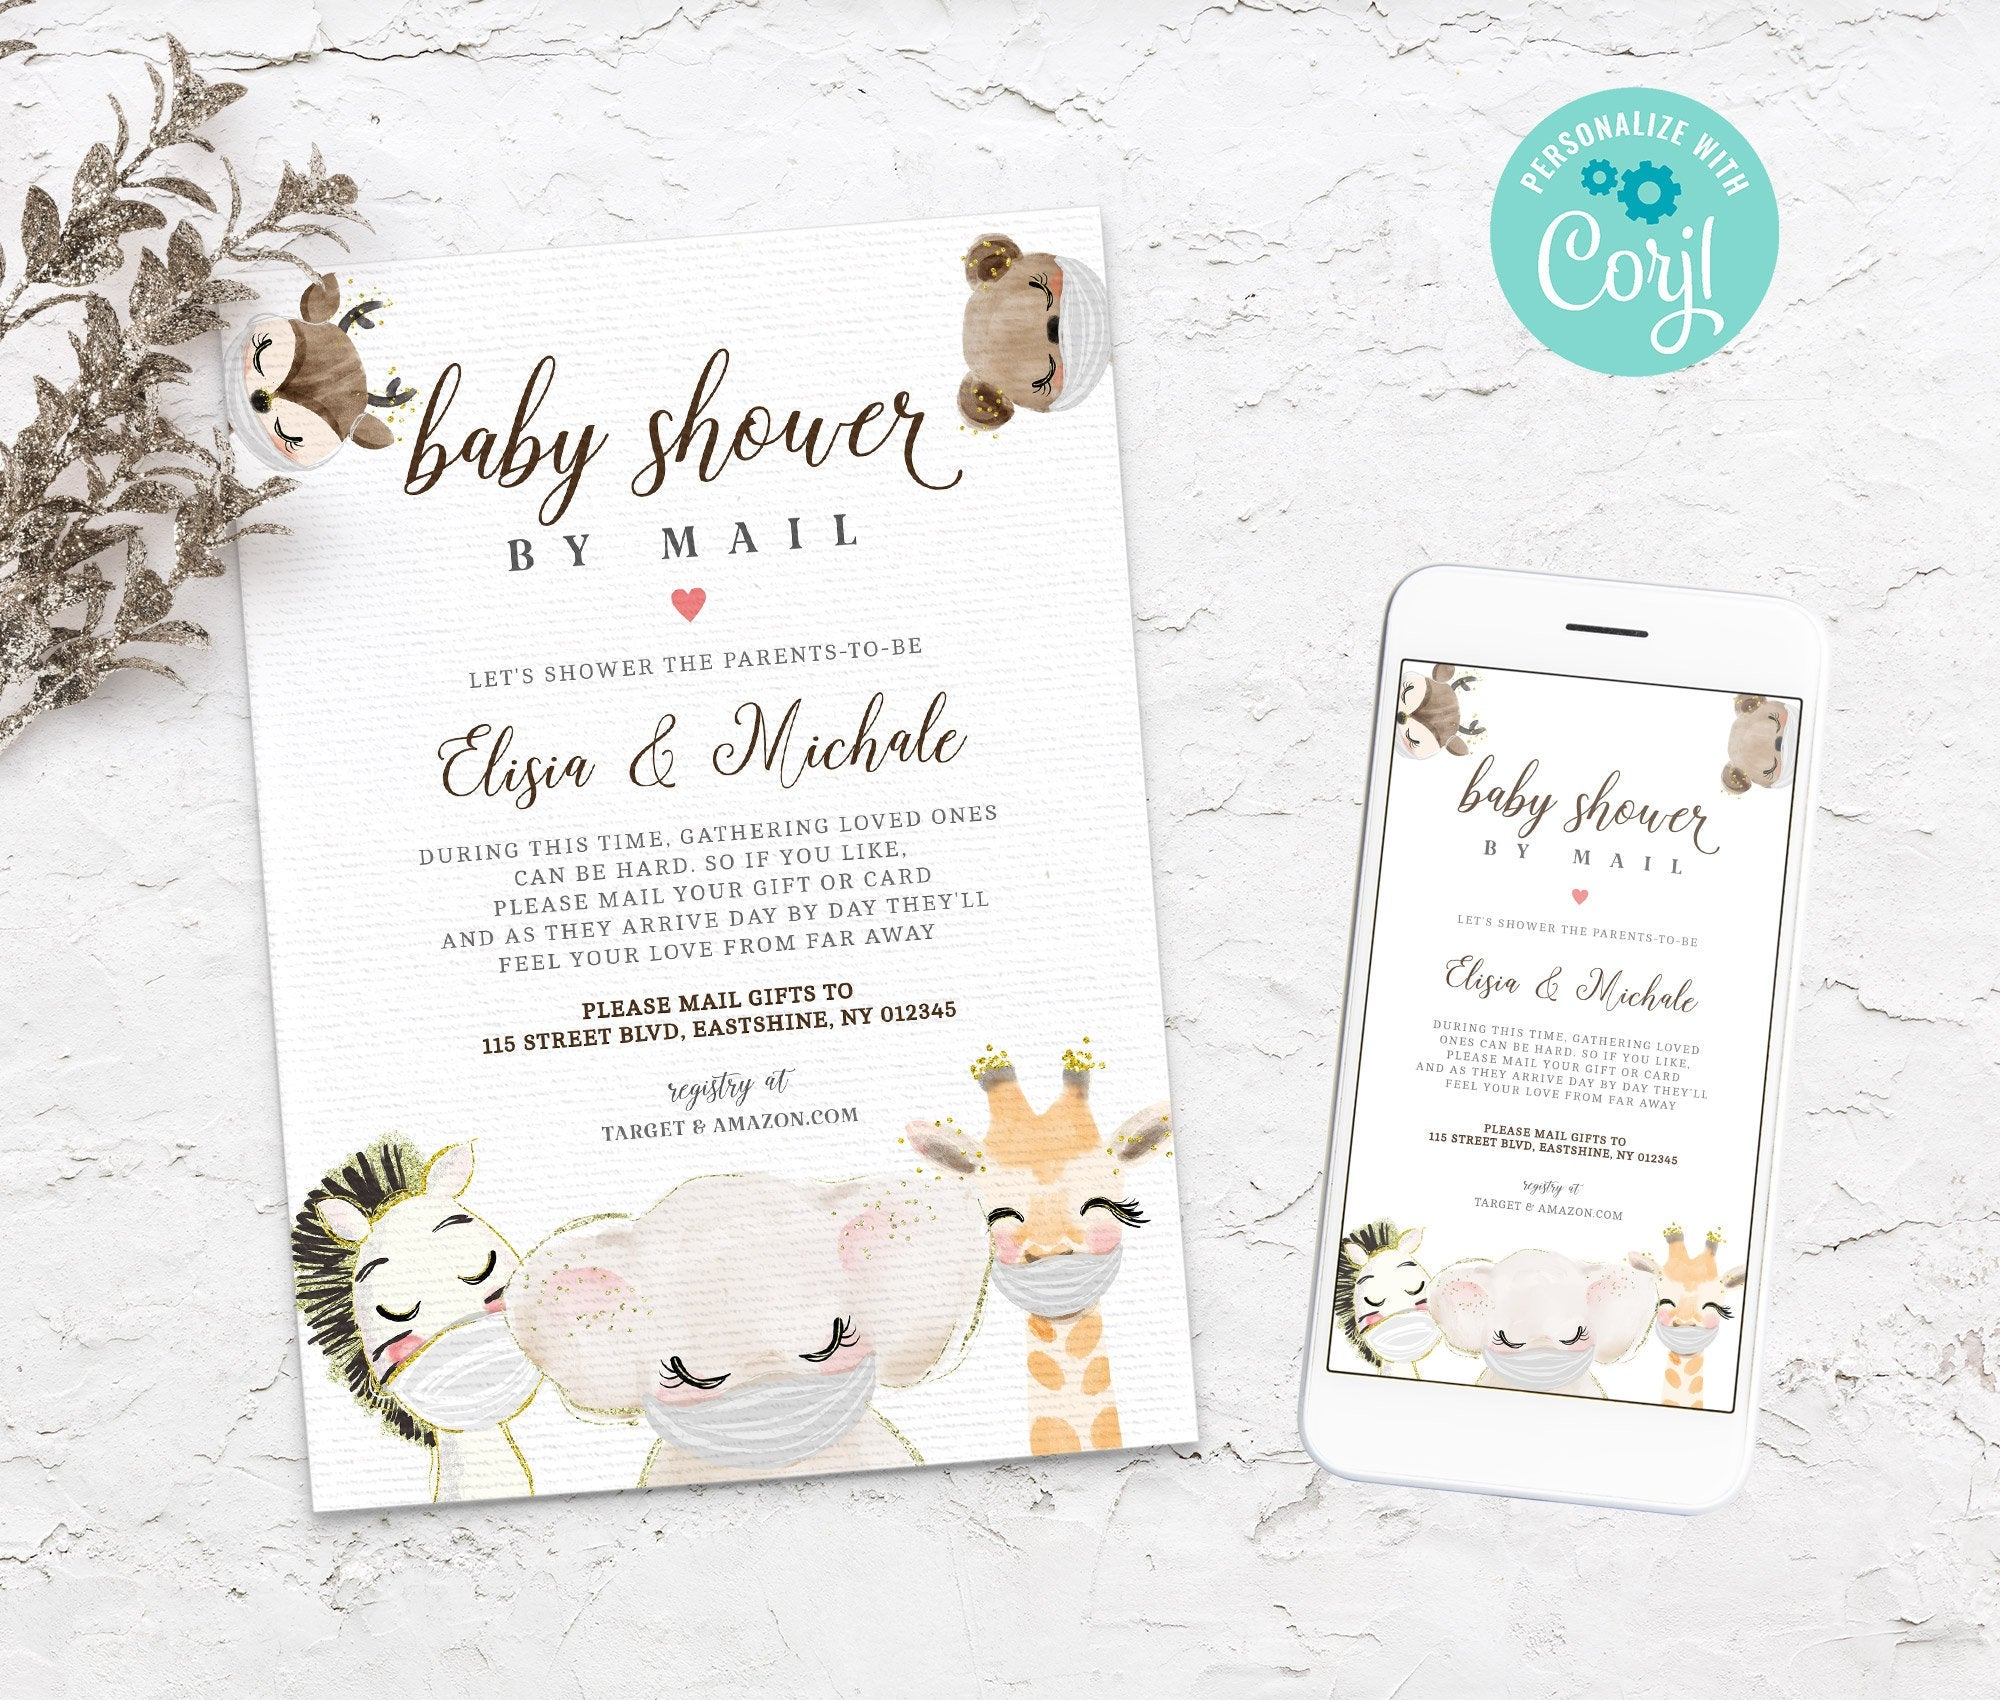 Baby Shower by Mail Template - Baby shower invitation - Shower by Mail - Baby Shower invite - Editable Text - Instant Download - 3607 BS3601